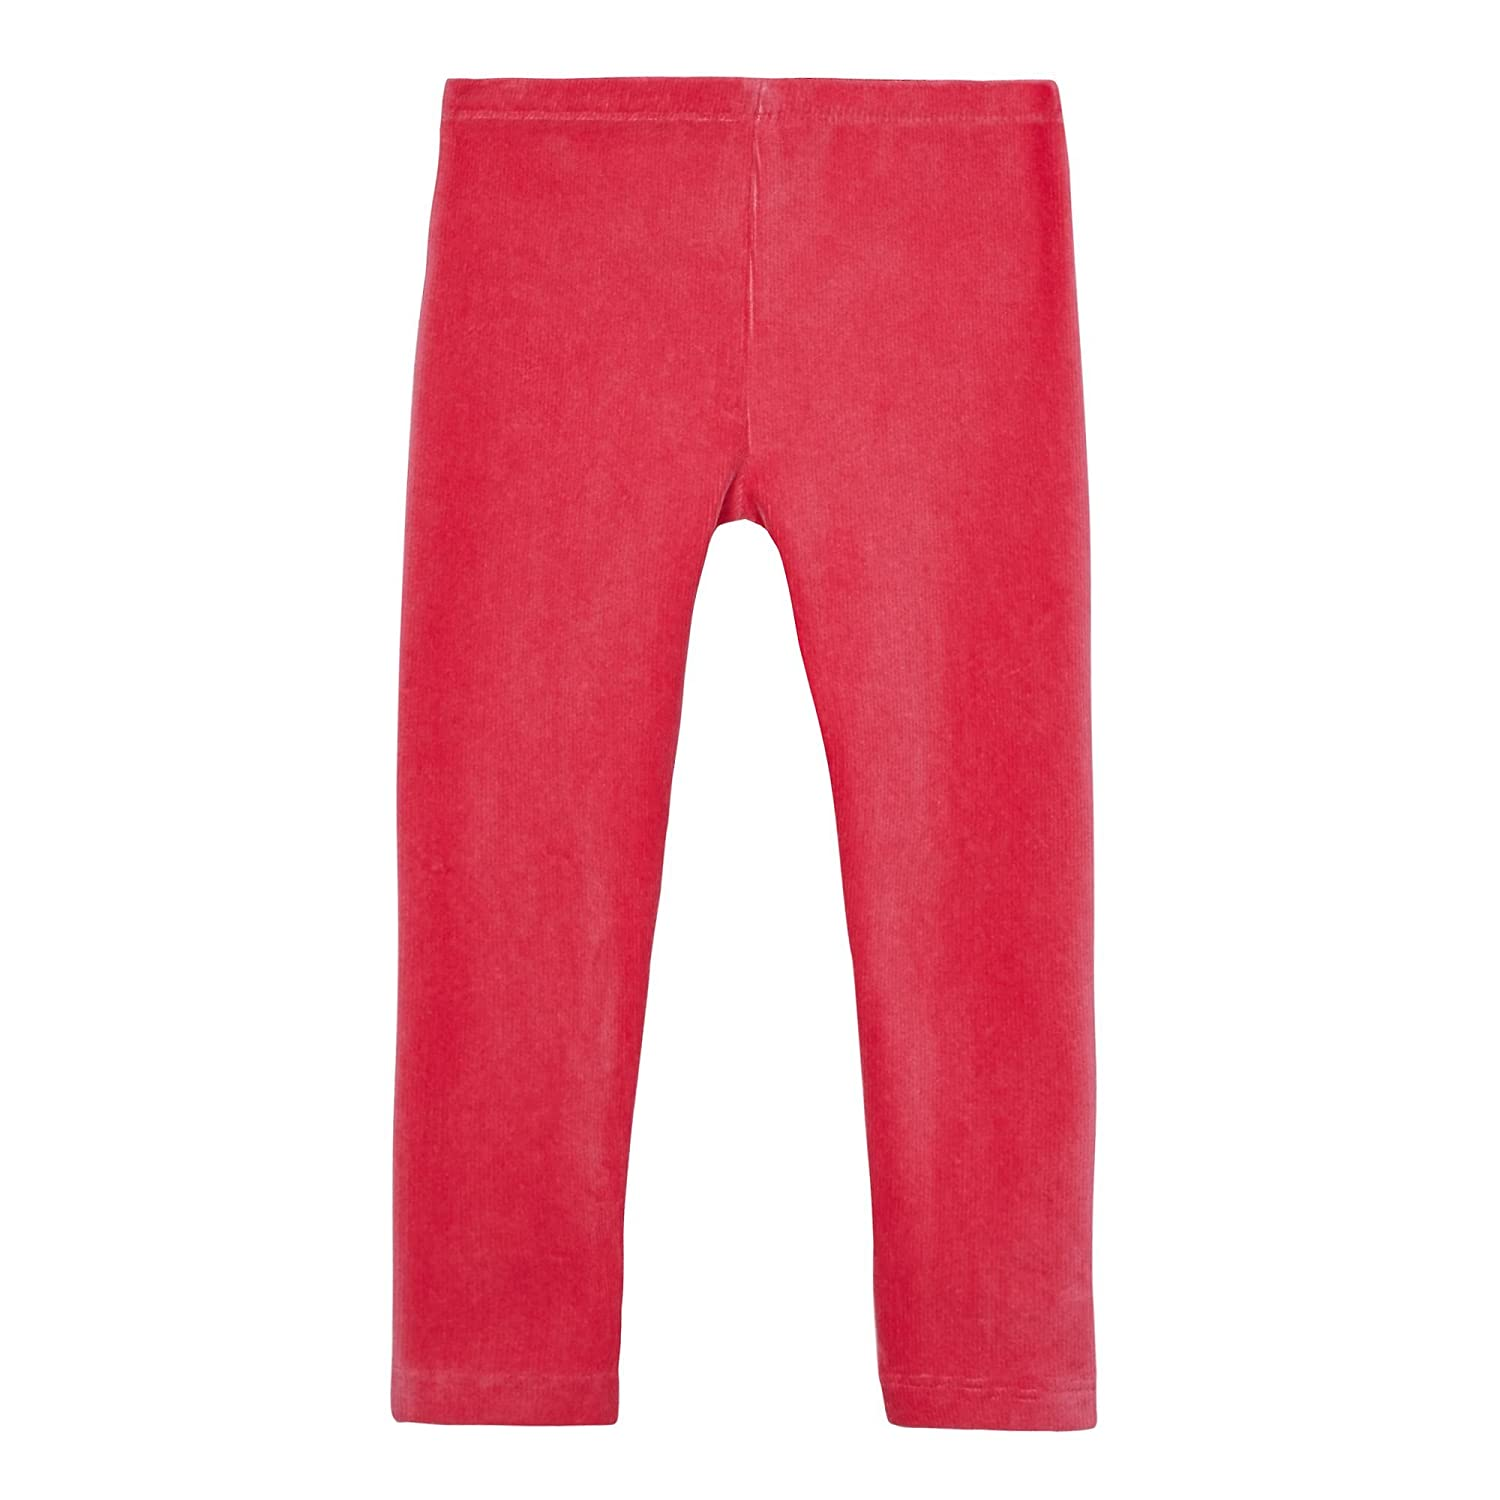 Bluezoo Kids Girls' Pink Cord Leggings 12-18 Months